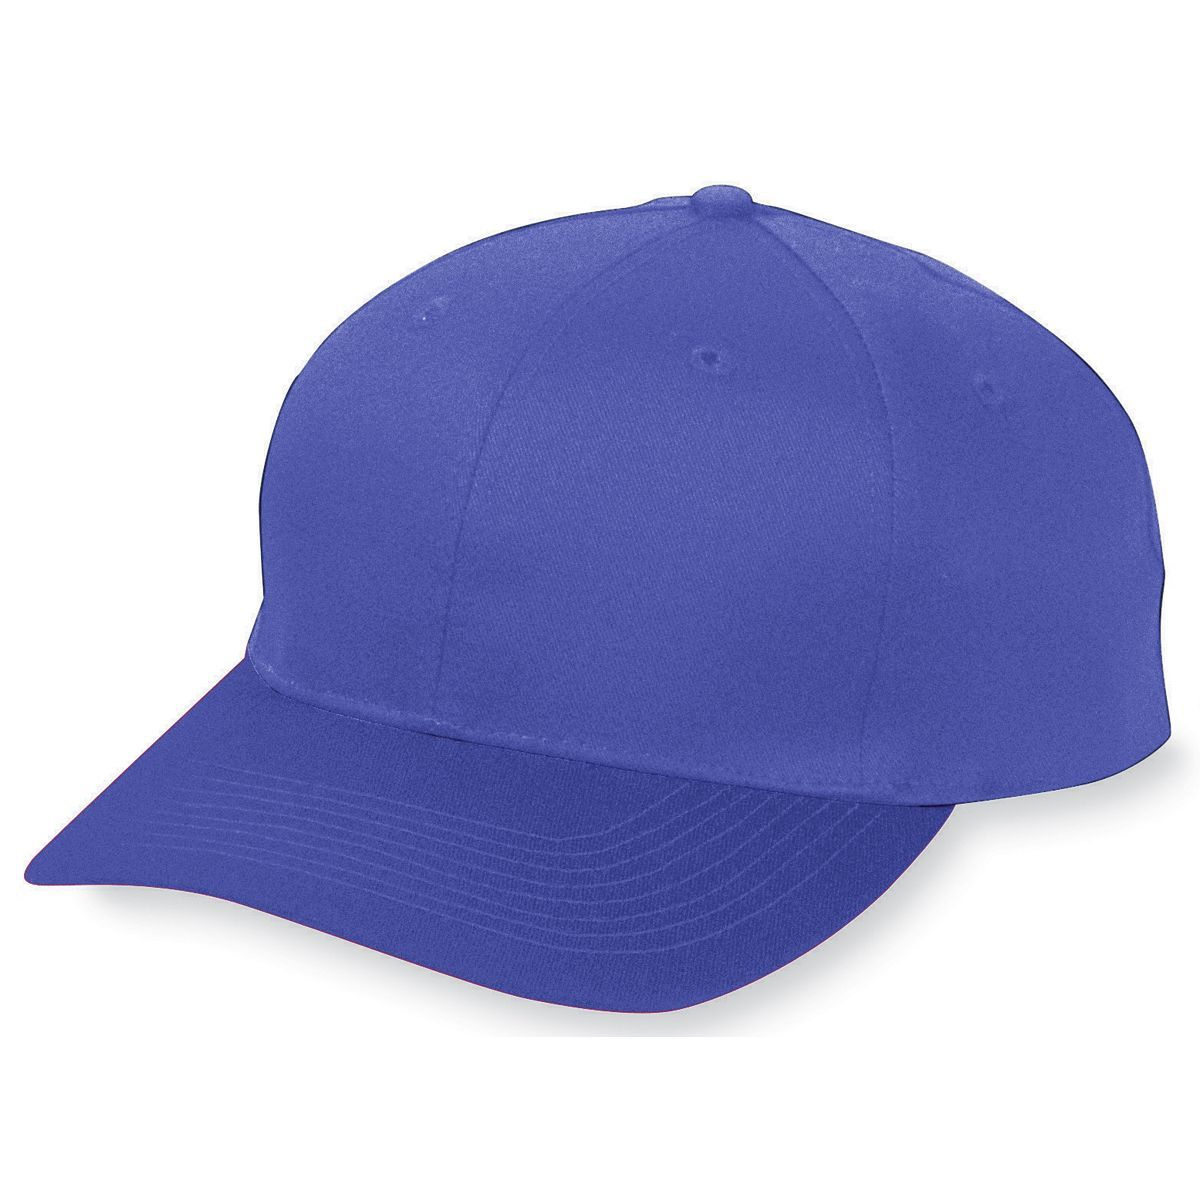 Youth Six-Panel Cotton Twill Low-Profile Cap - PURPLE